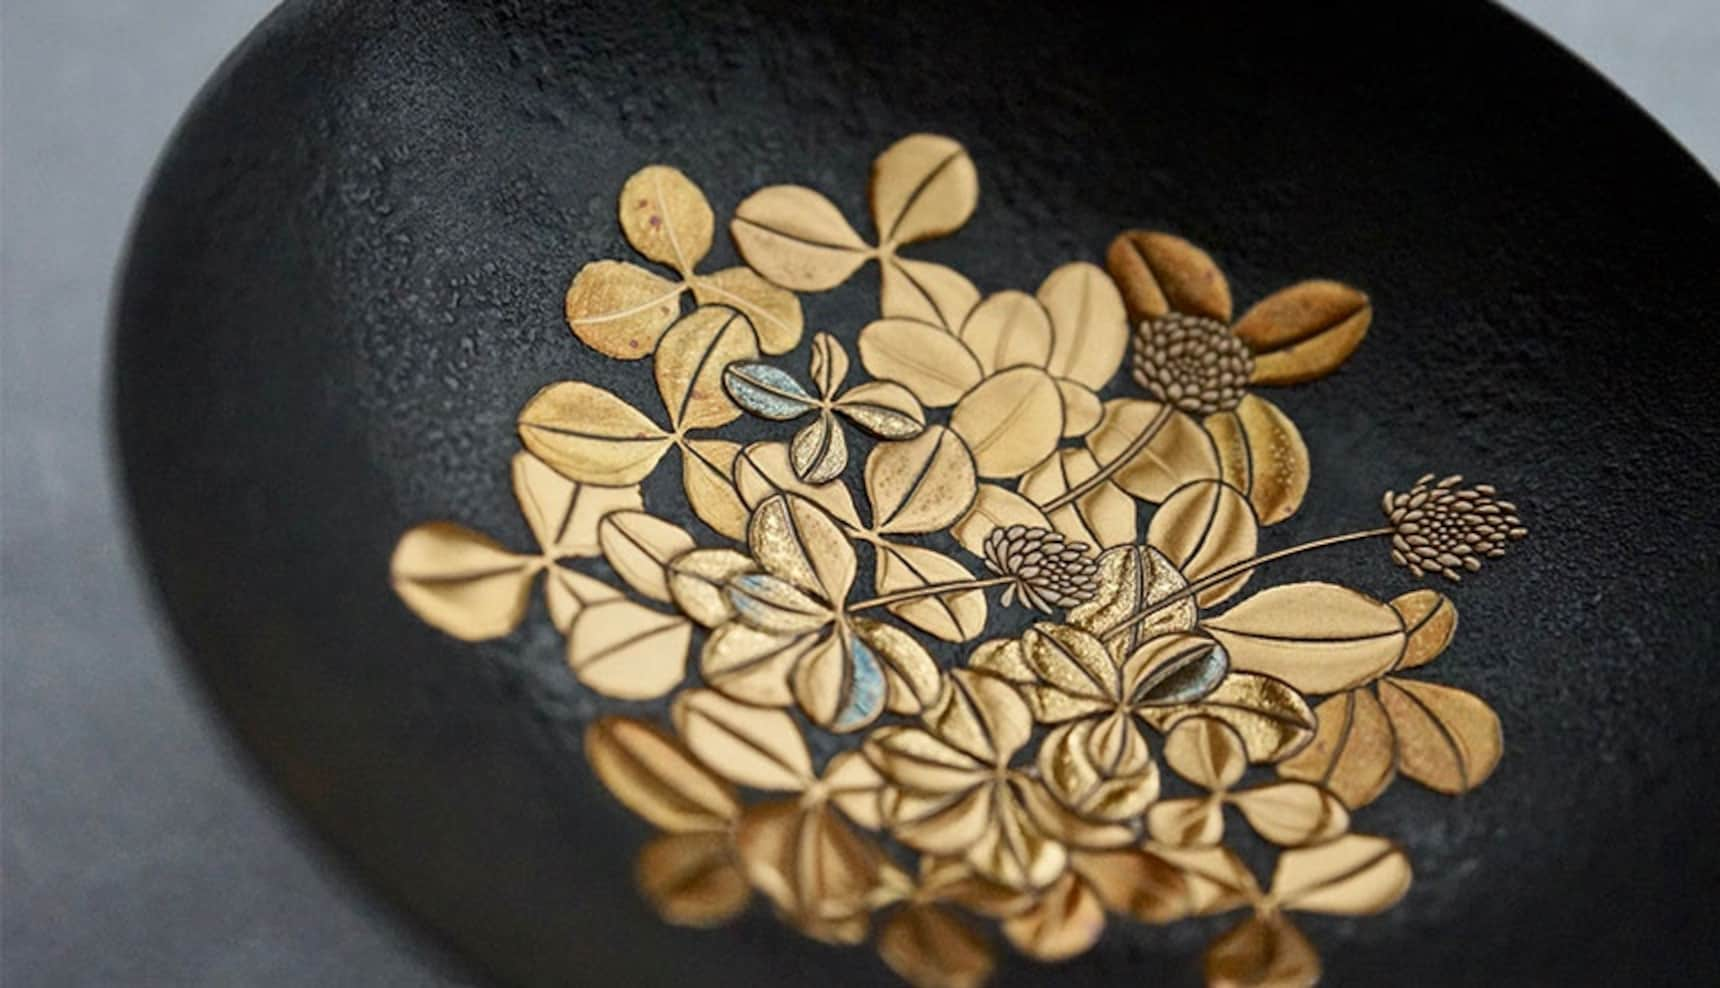 The Organic Beauty of Kaga Lacquerware